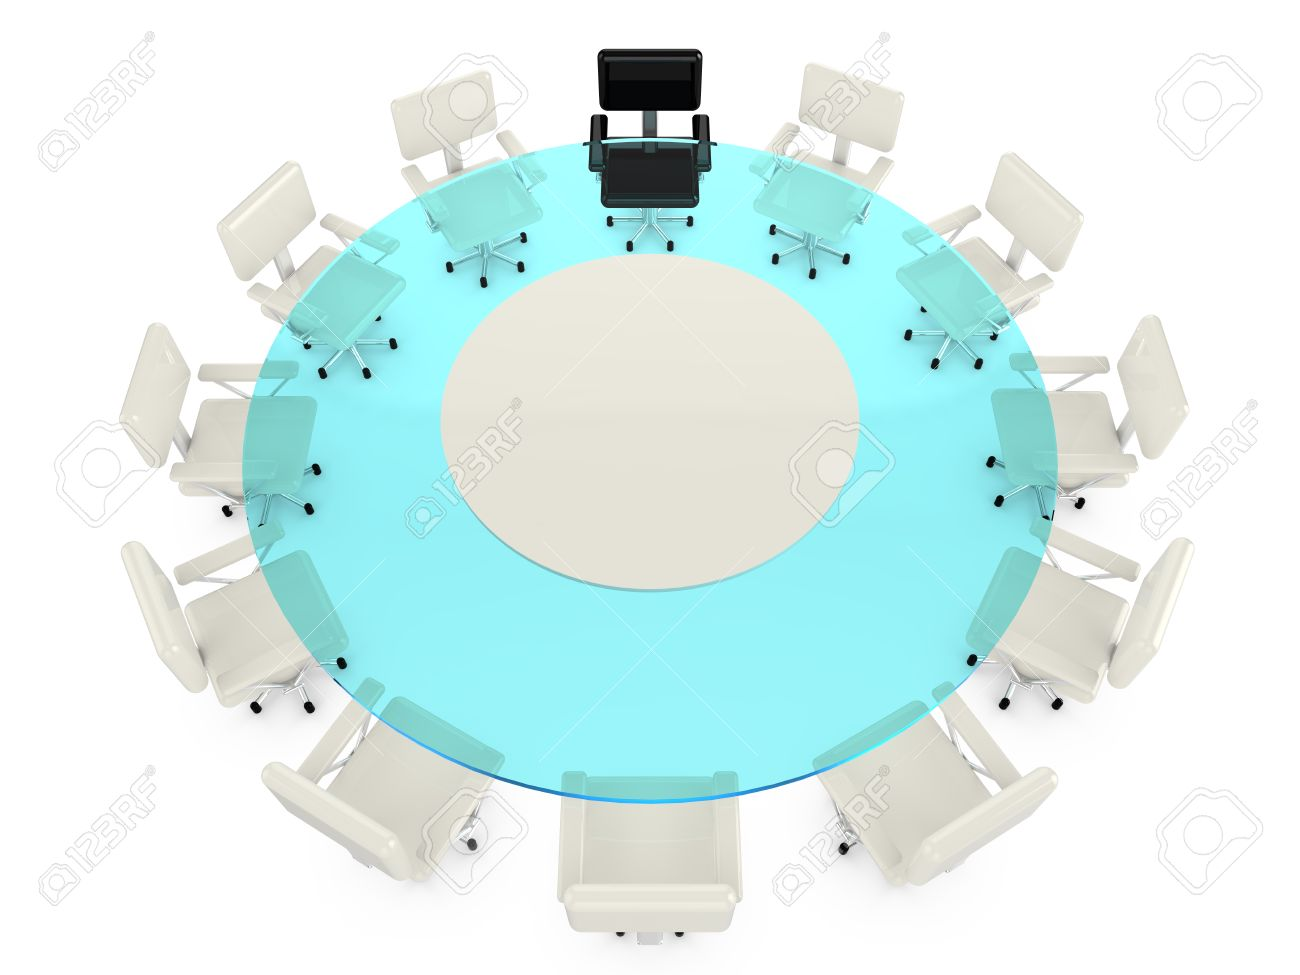 Round Glass Conference Table With White Office Armchairs And - Round glass conference table